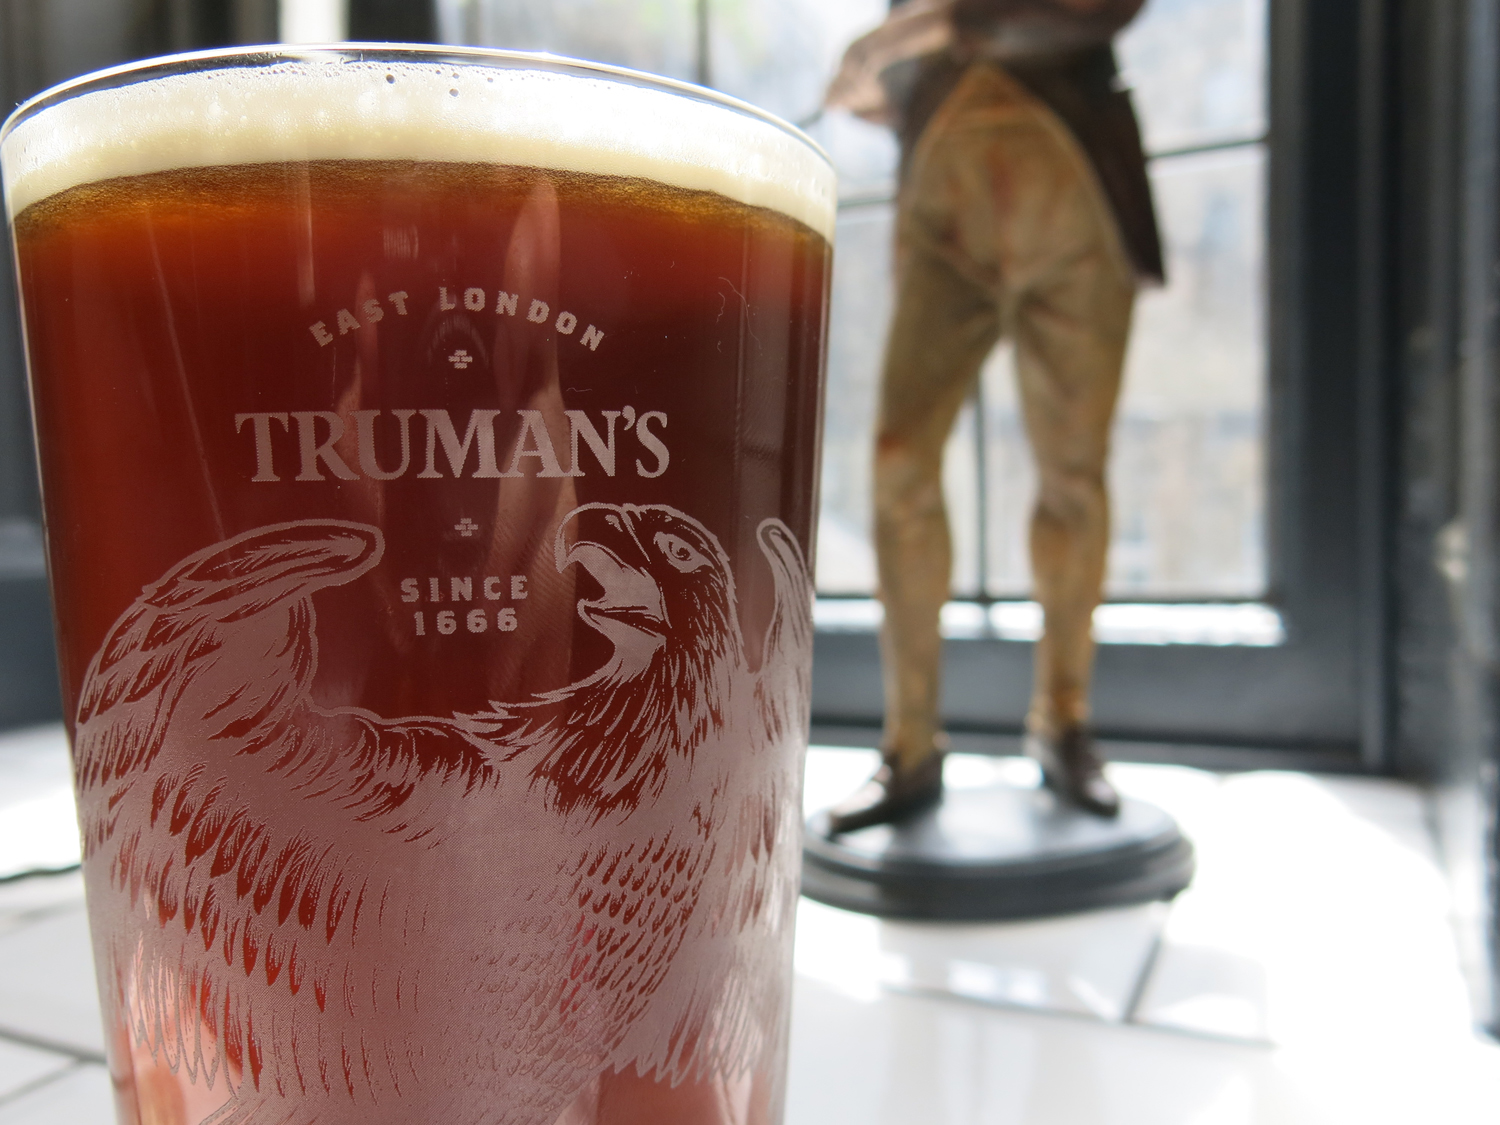 Beer - Newman Arms